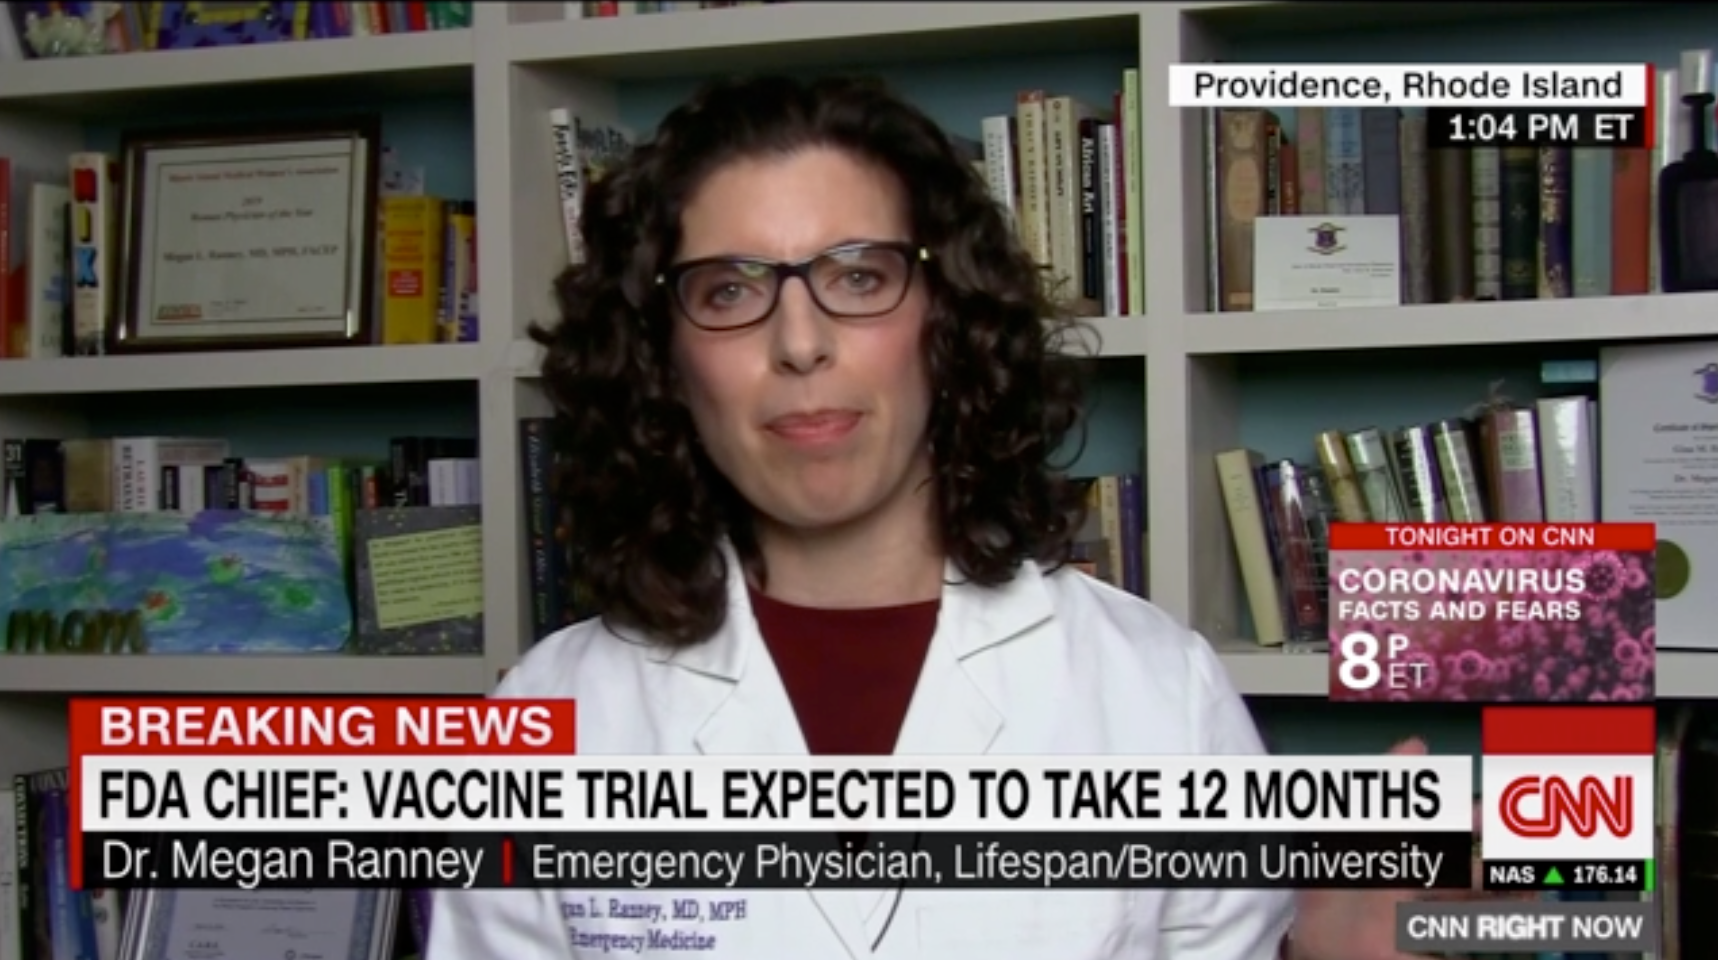 Dr. Megan Ranney appears on CNN to discuss the personal protective equipment shortage